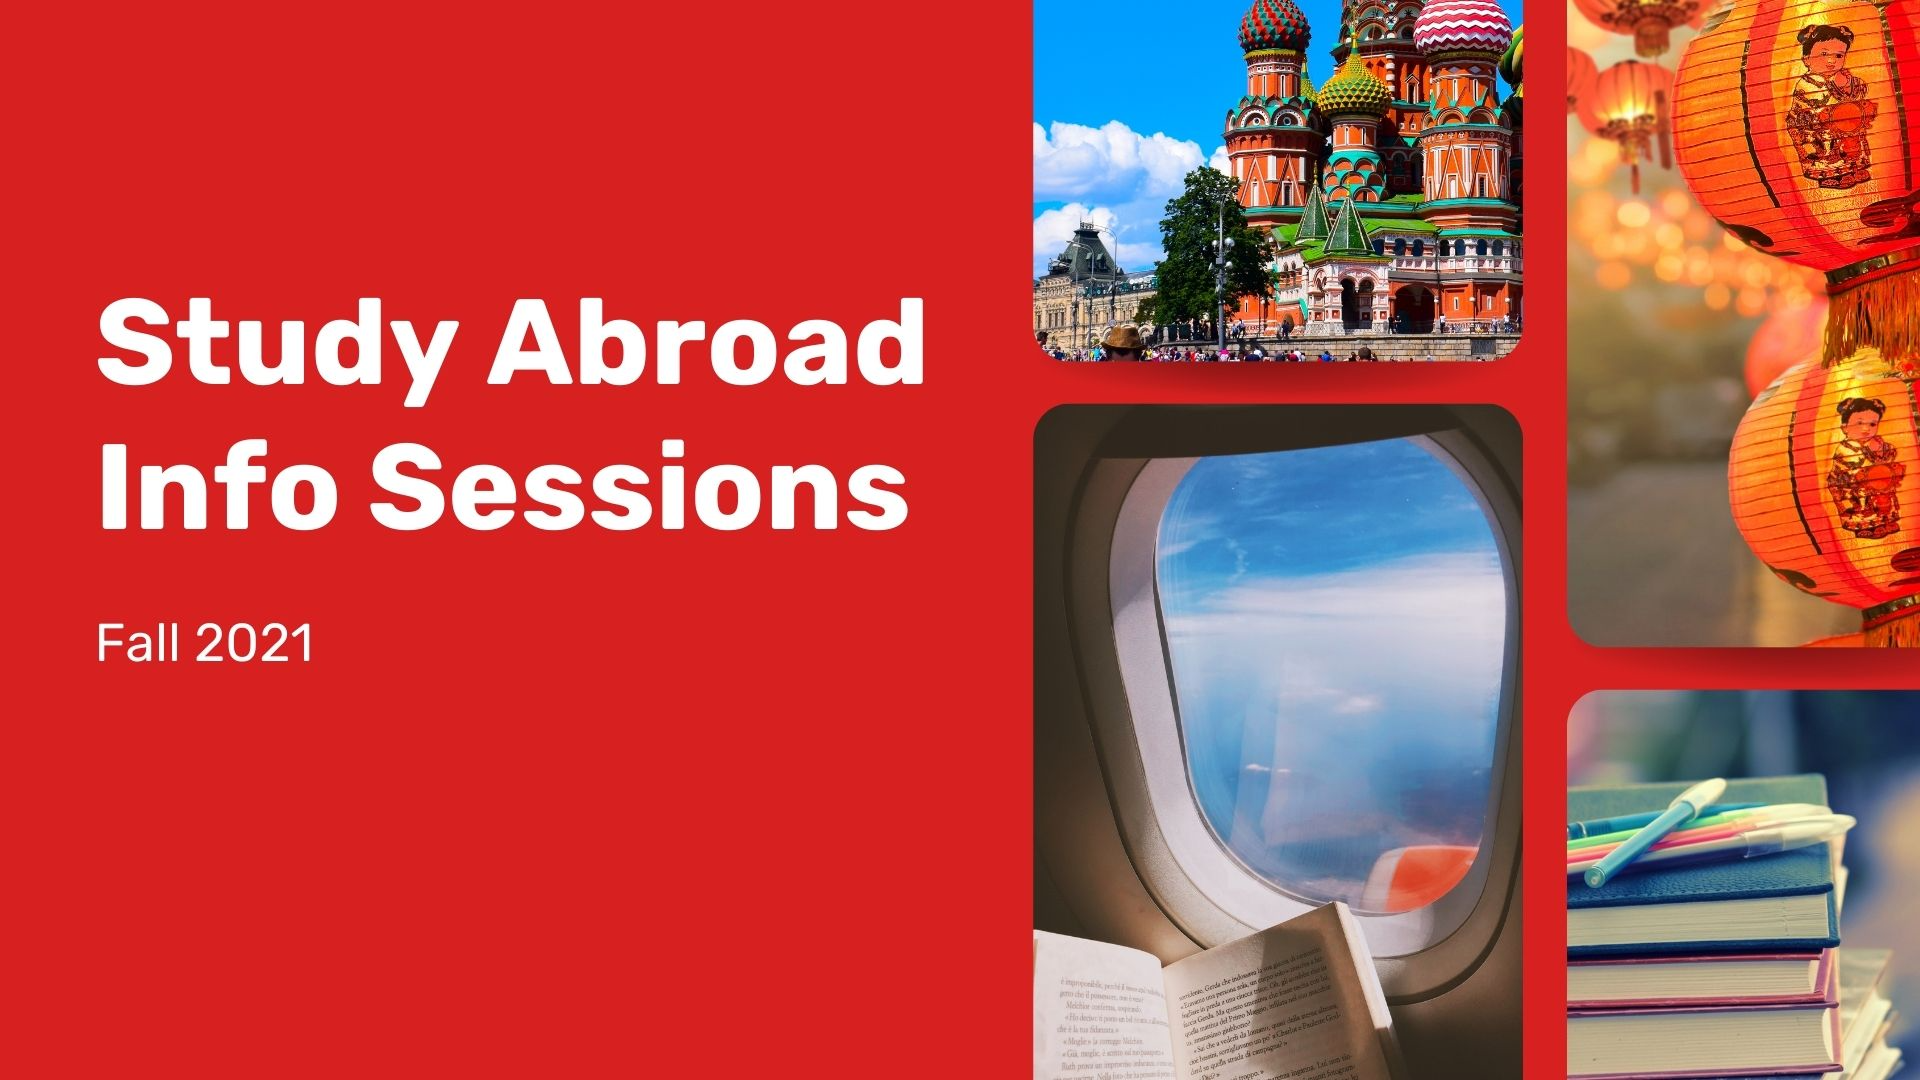 Study Abroad Info Sessions in Fall 2021